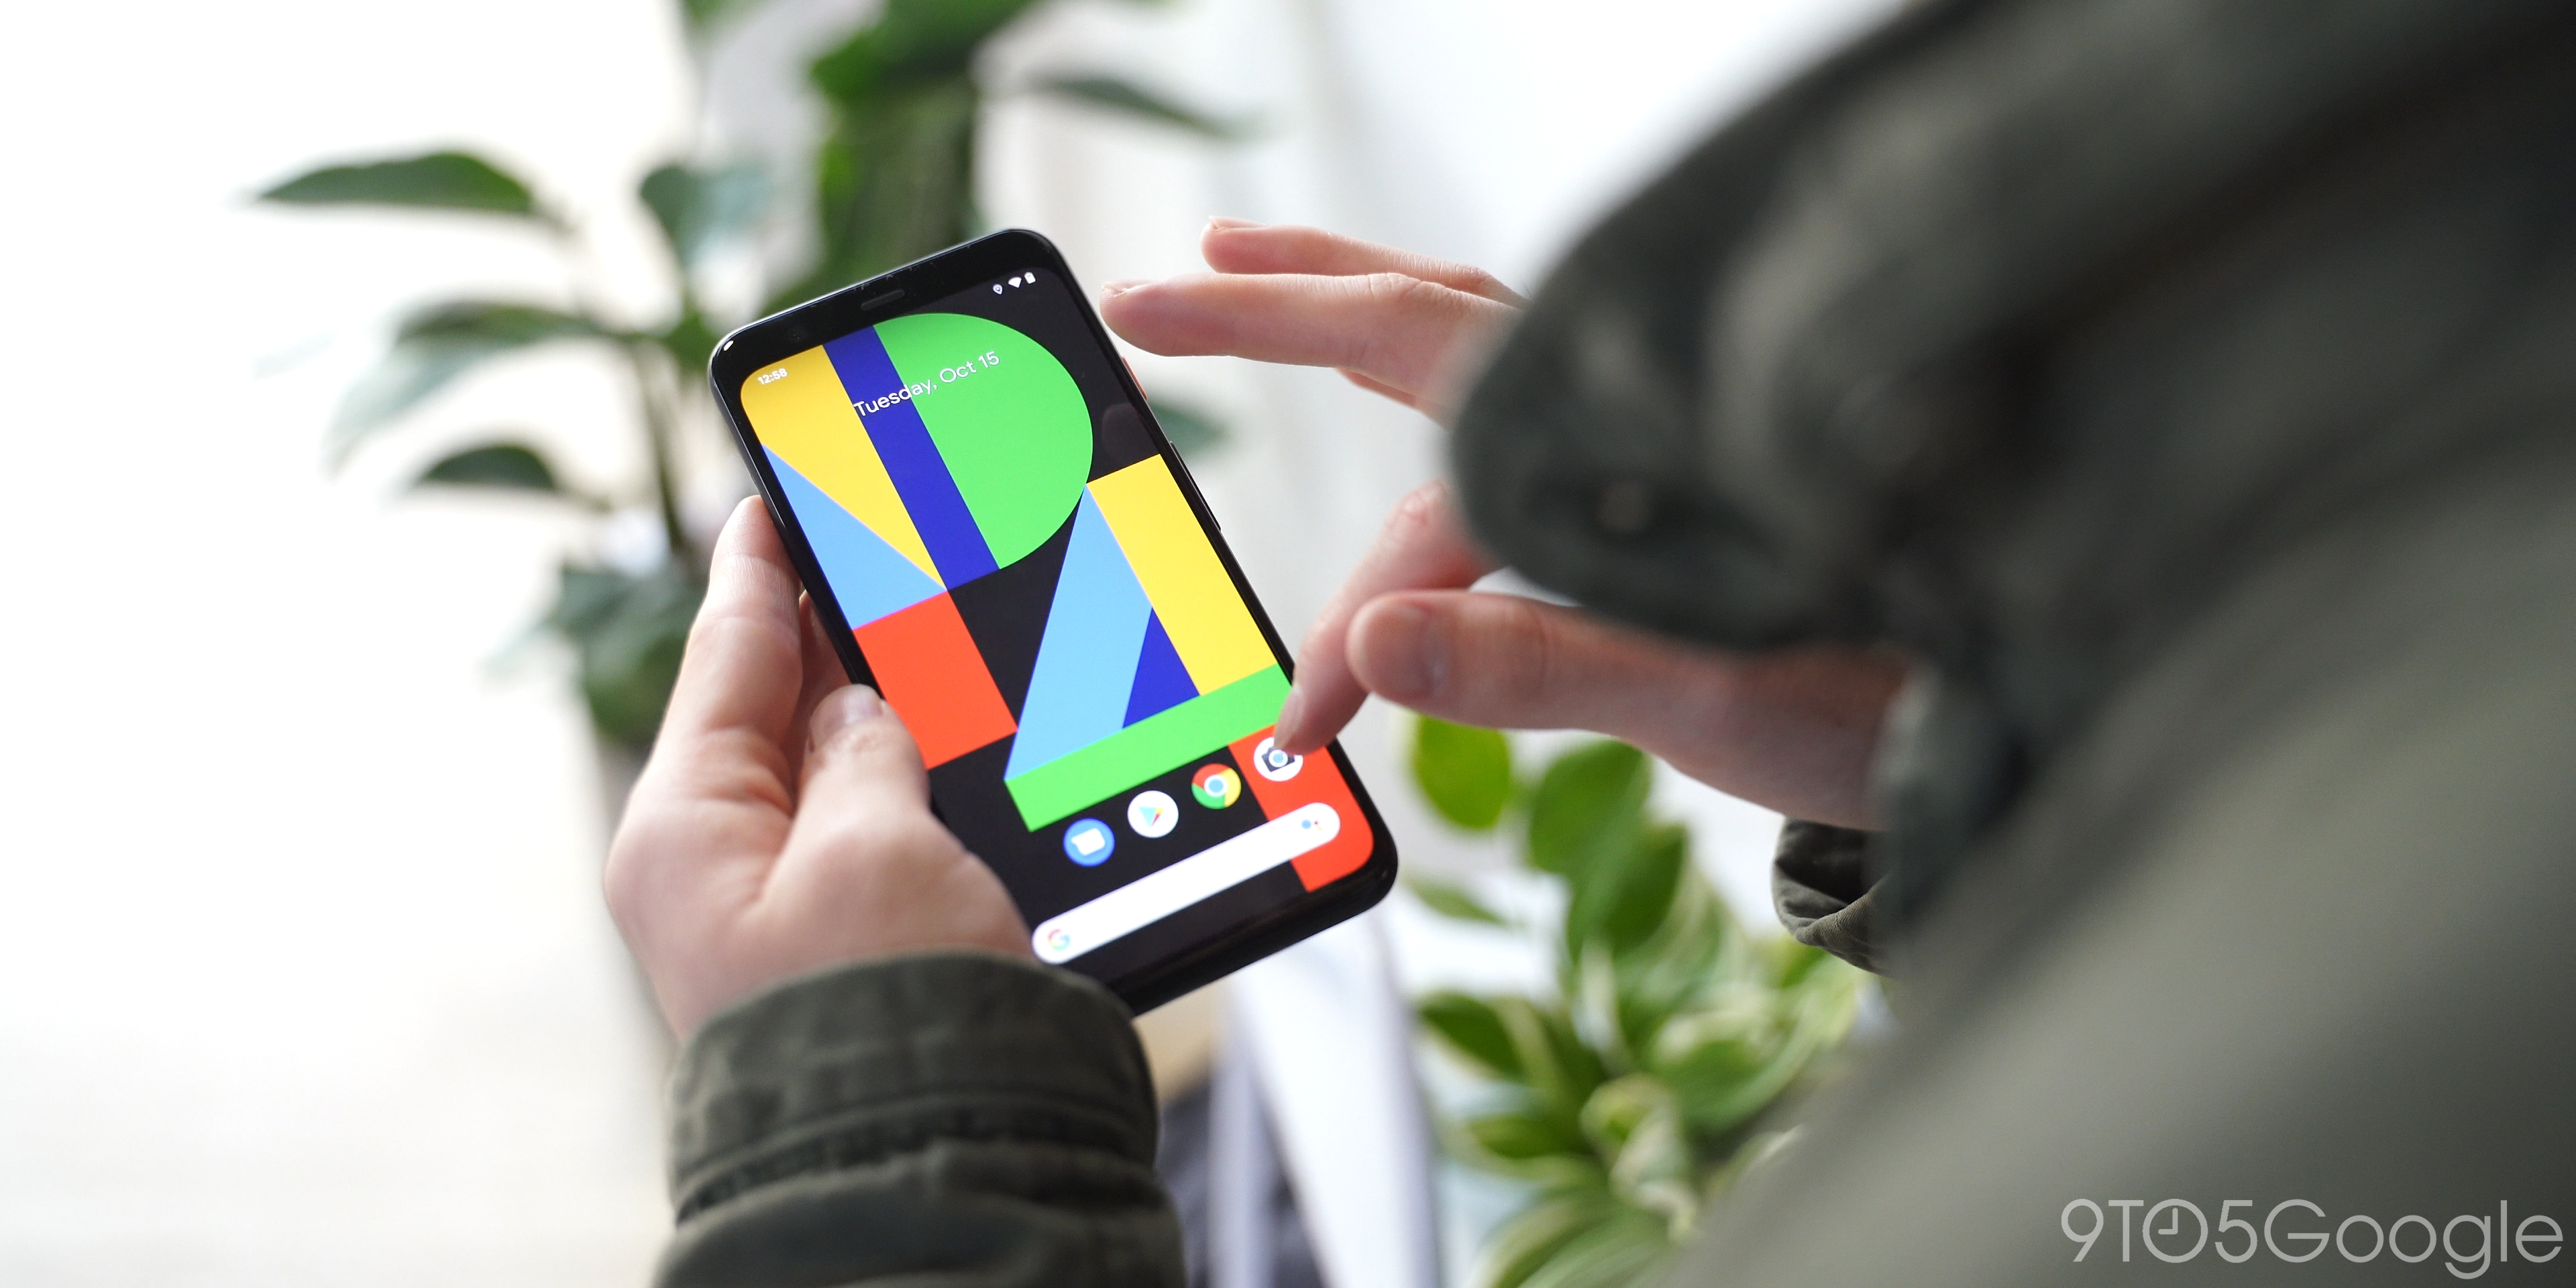 Where to buy Google Pixel 4 and Google Pixel 4 XL